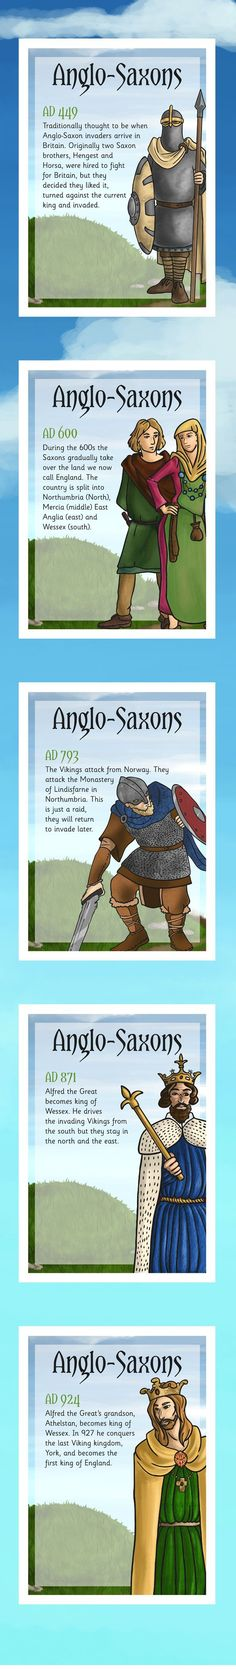 It was a coalition of Norse warriors, originating from Denmark, Sweden and Norway, who came together under a unified command to invade the four Anglo-Saxon kingdoms that constituted England in AD 865. Description from pinterest.com. I searched for this on bing.com/images